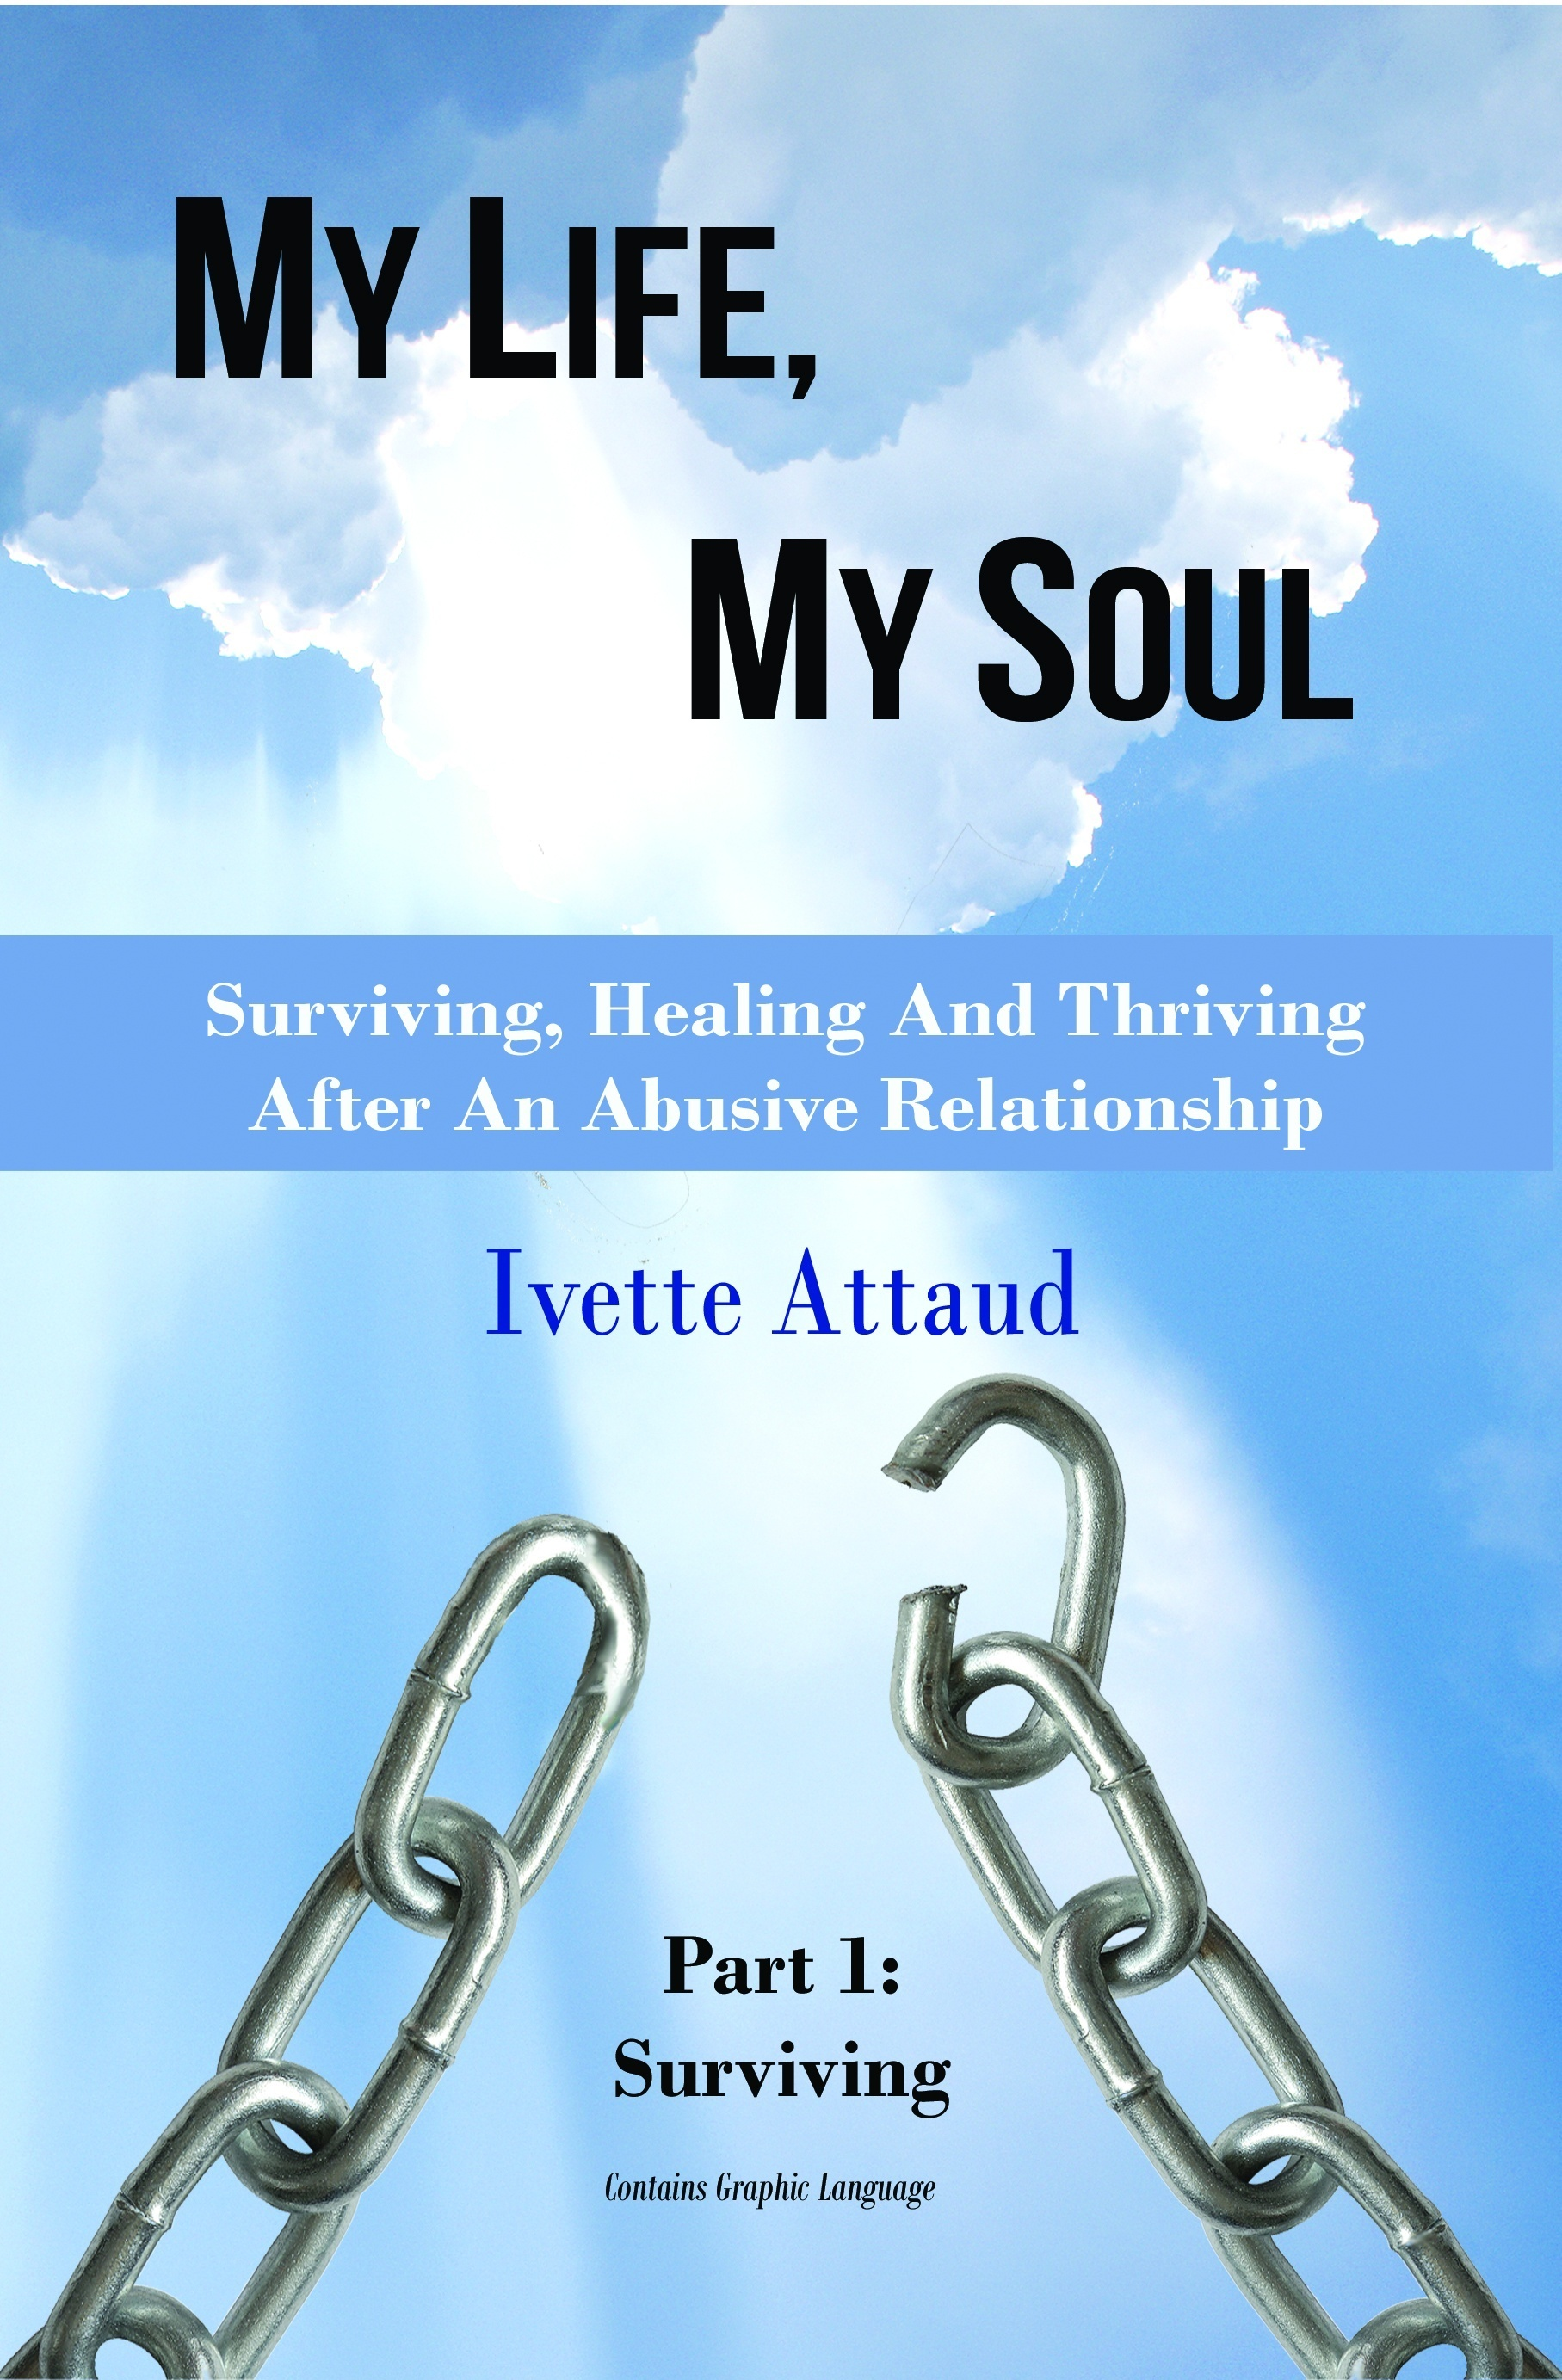 My Life, My Soul: Surviving, Healing And Thriving After An Abusive Relationship  by  Ivette Attaud